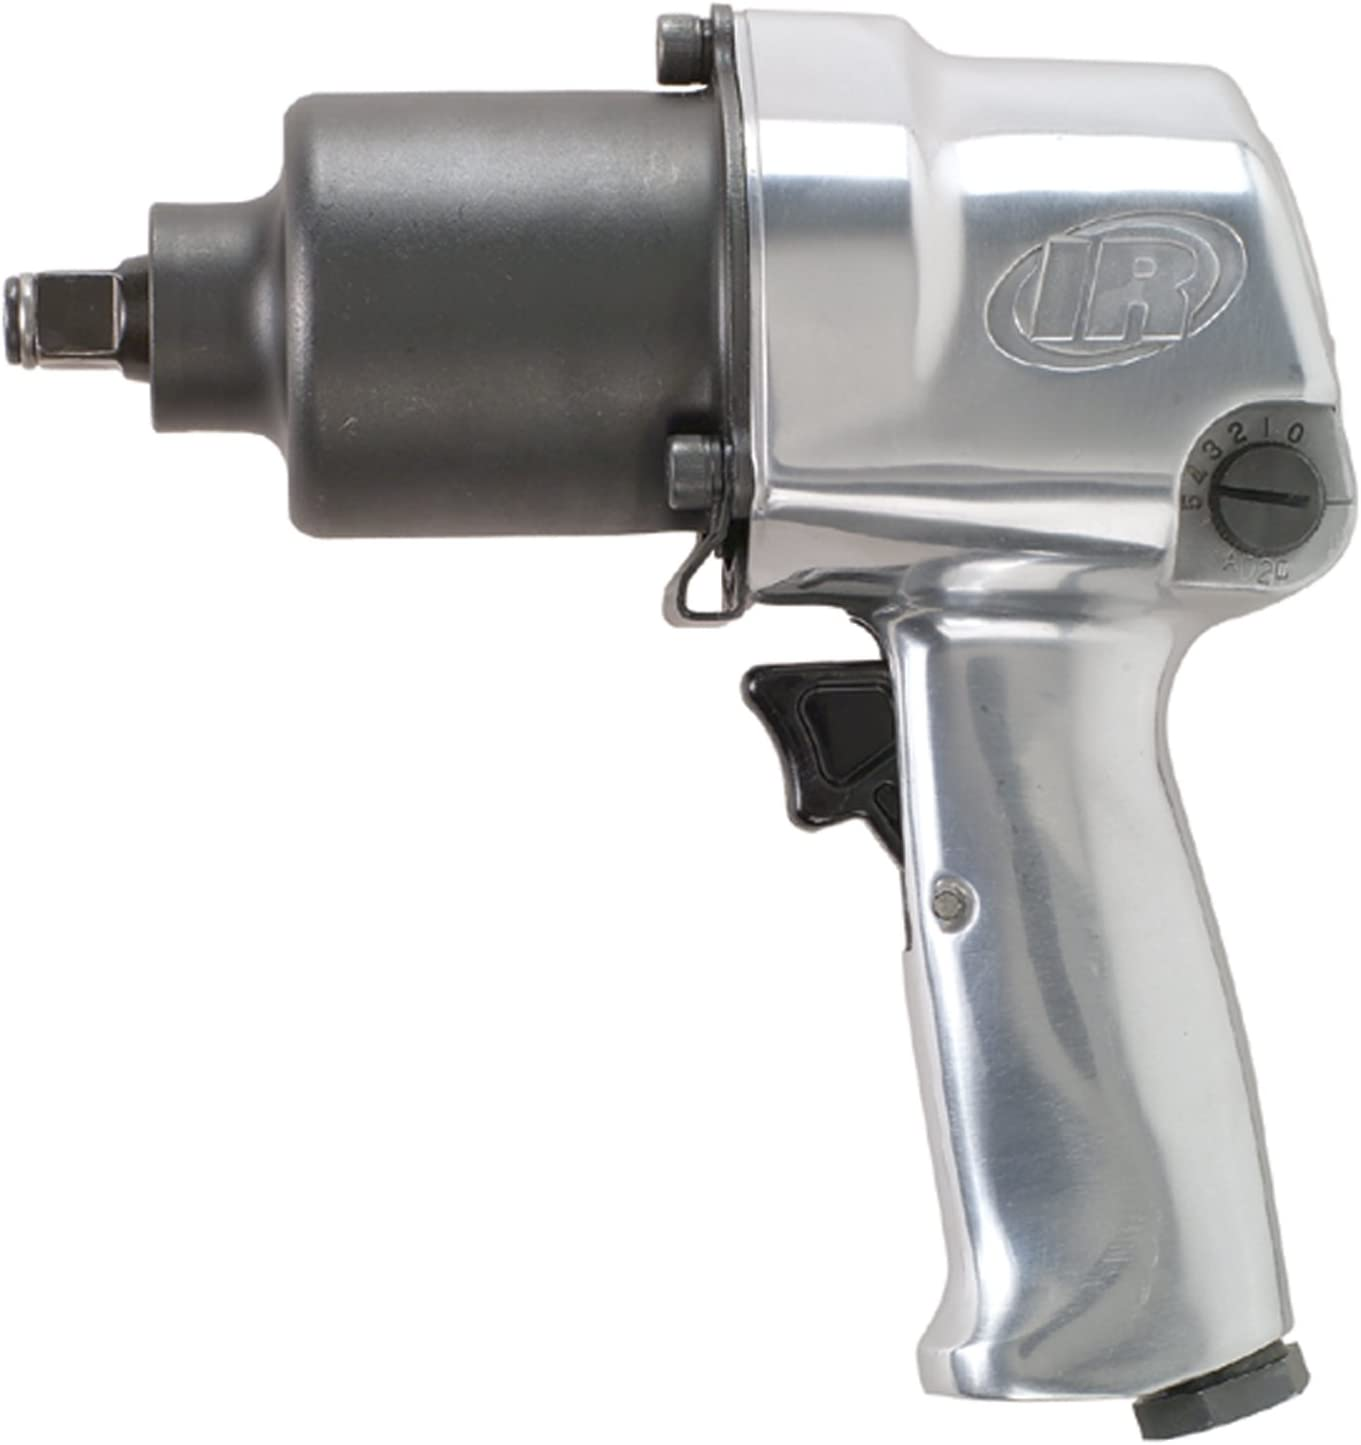 Ingersoll Rand 244A 1 2-Inch Super Duty Air Impact Wrench